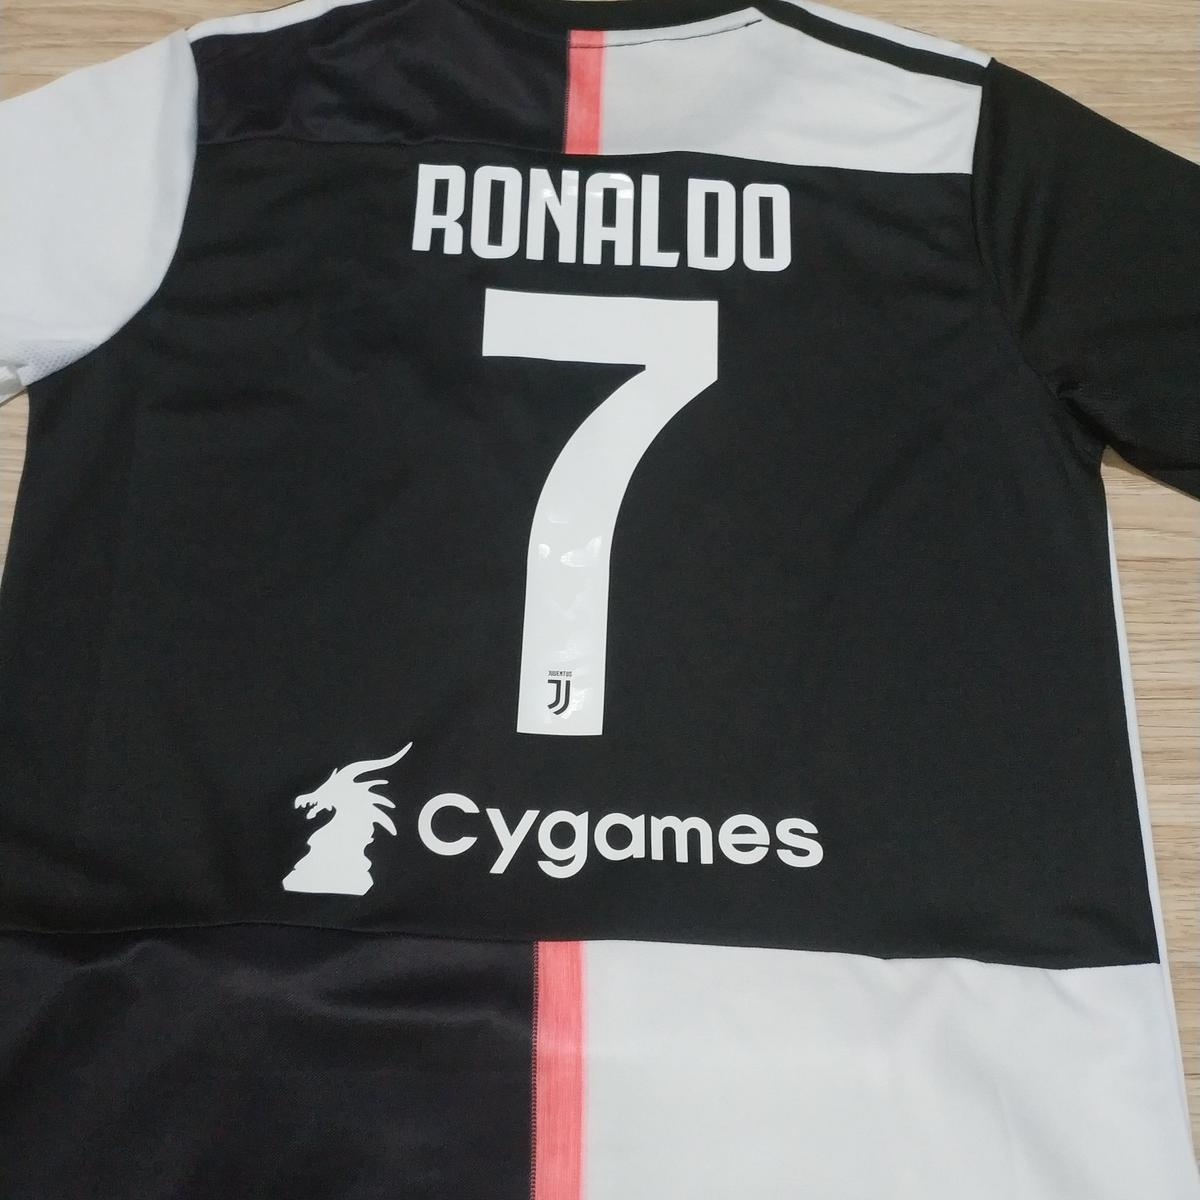 buy online a97b2 06003 Kids Juventus Football Kit Ronaldo Shirt